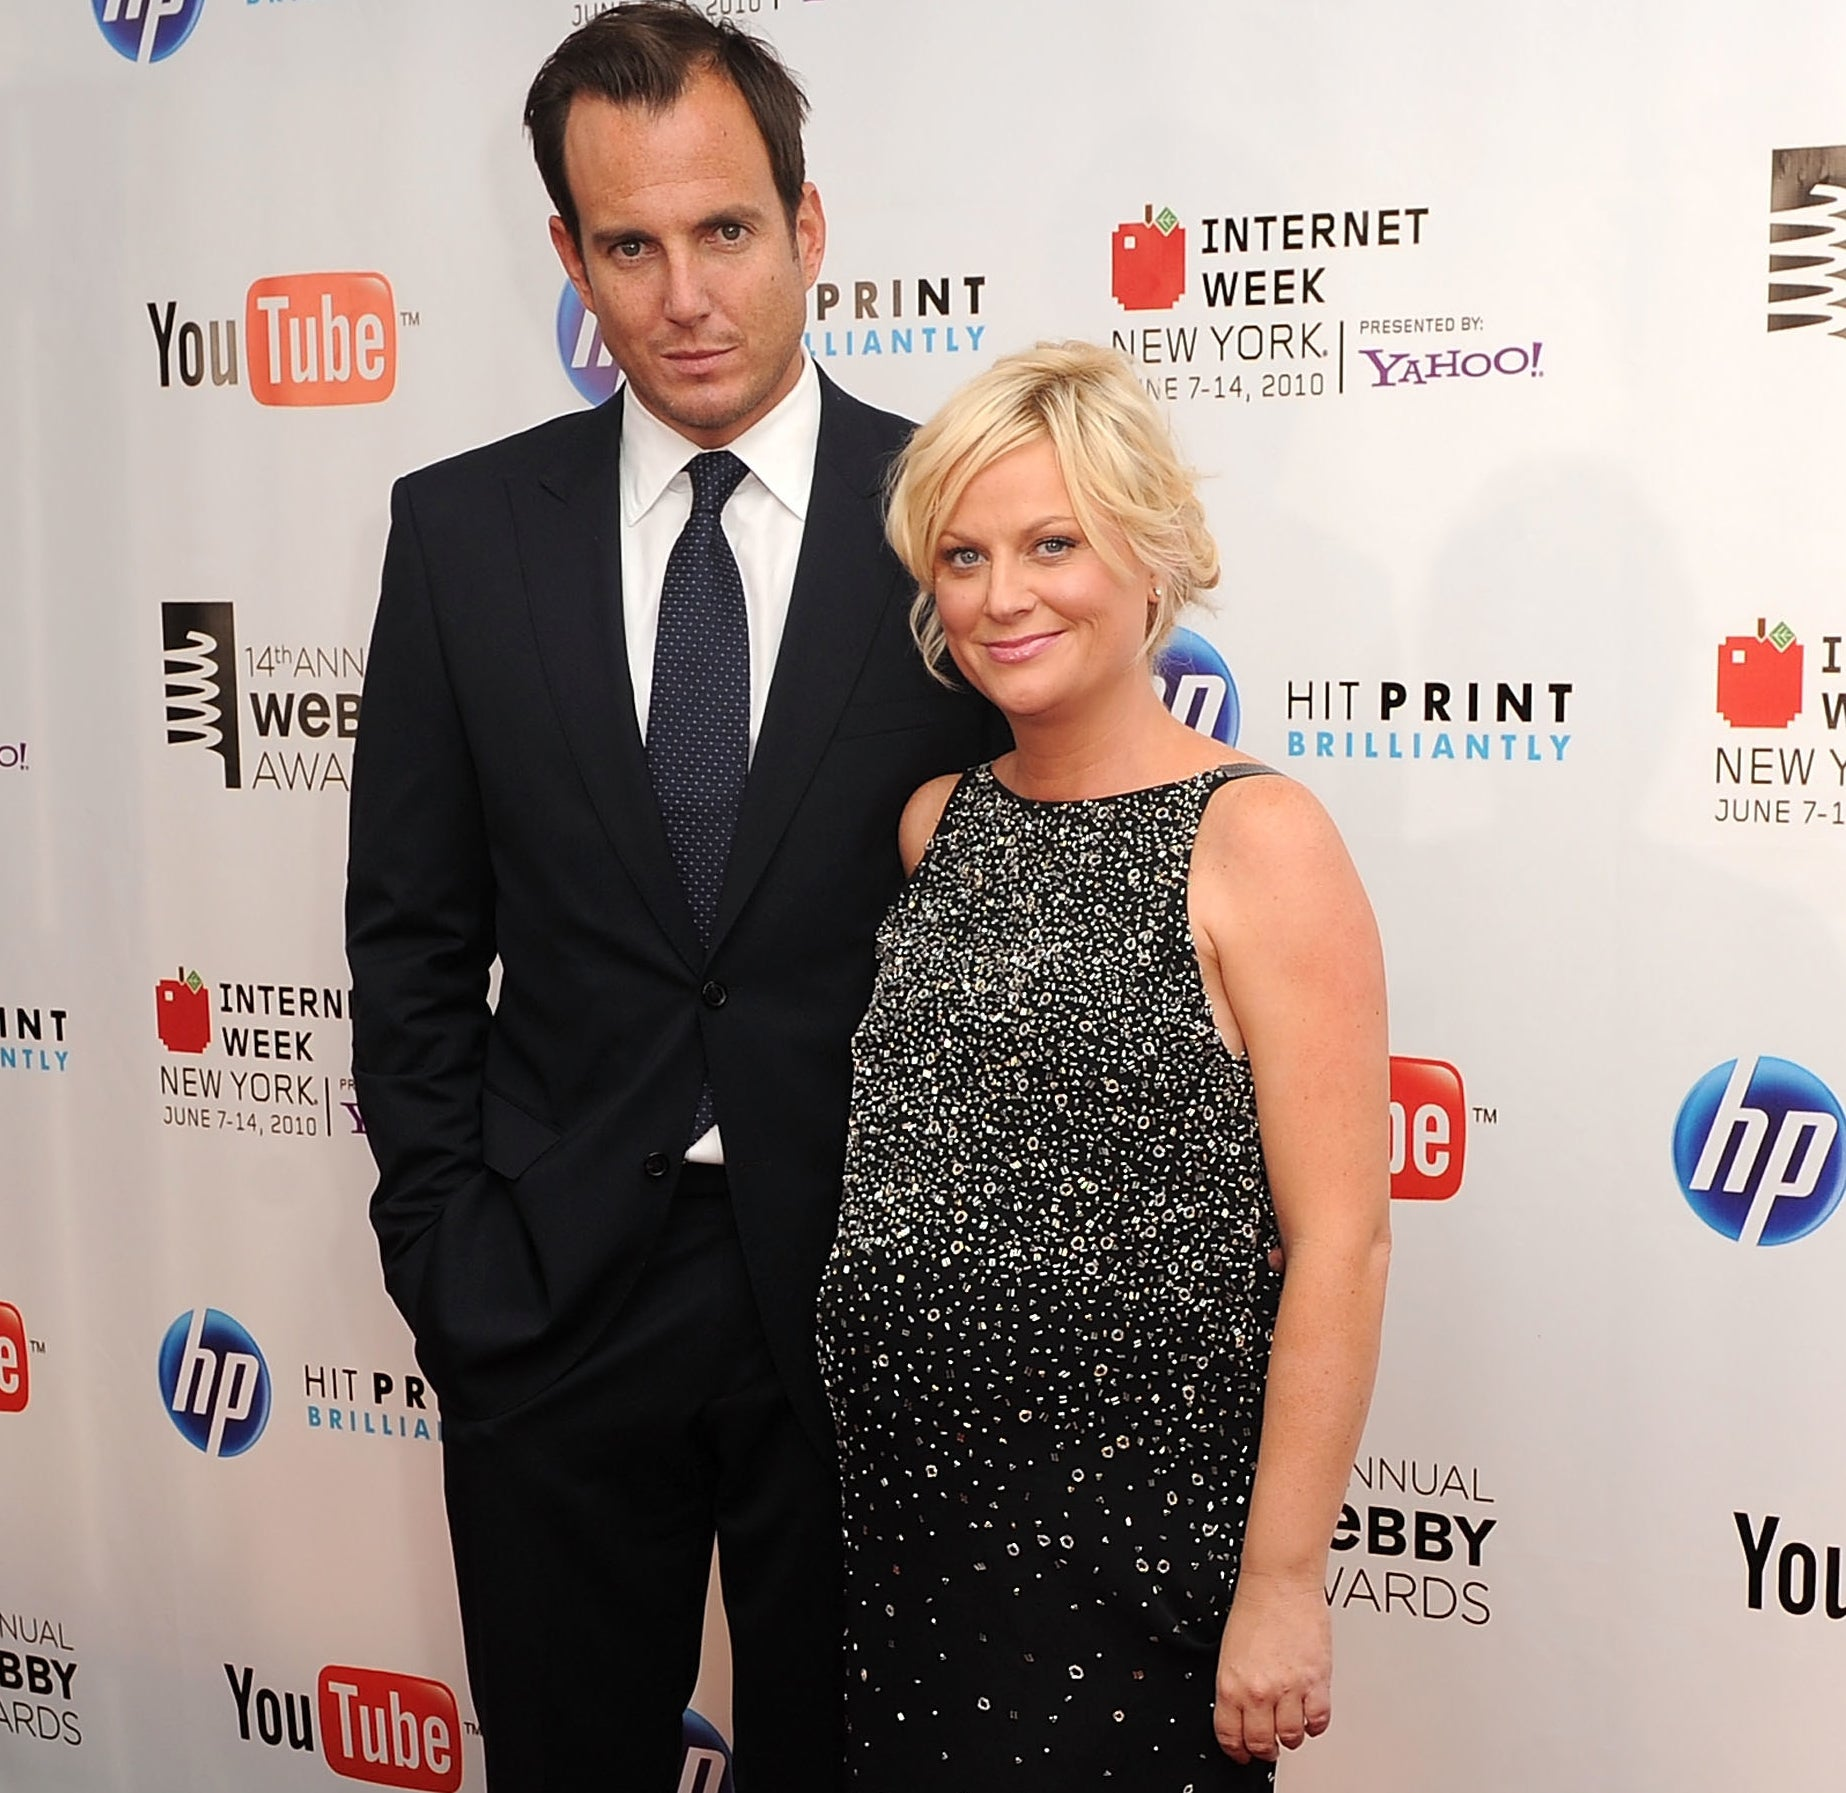 Will Arnett and Amy Poehler (who is pregnant and wearing a black stoned cocktail dress) on the red carpet of the 14th Annual Webby Awards in 2010